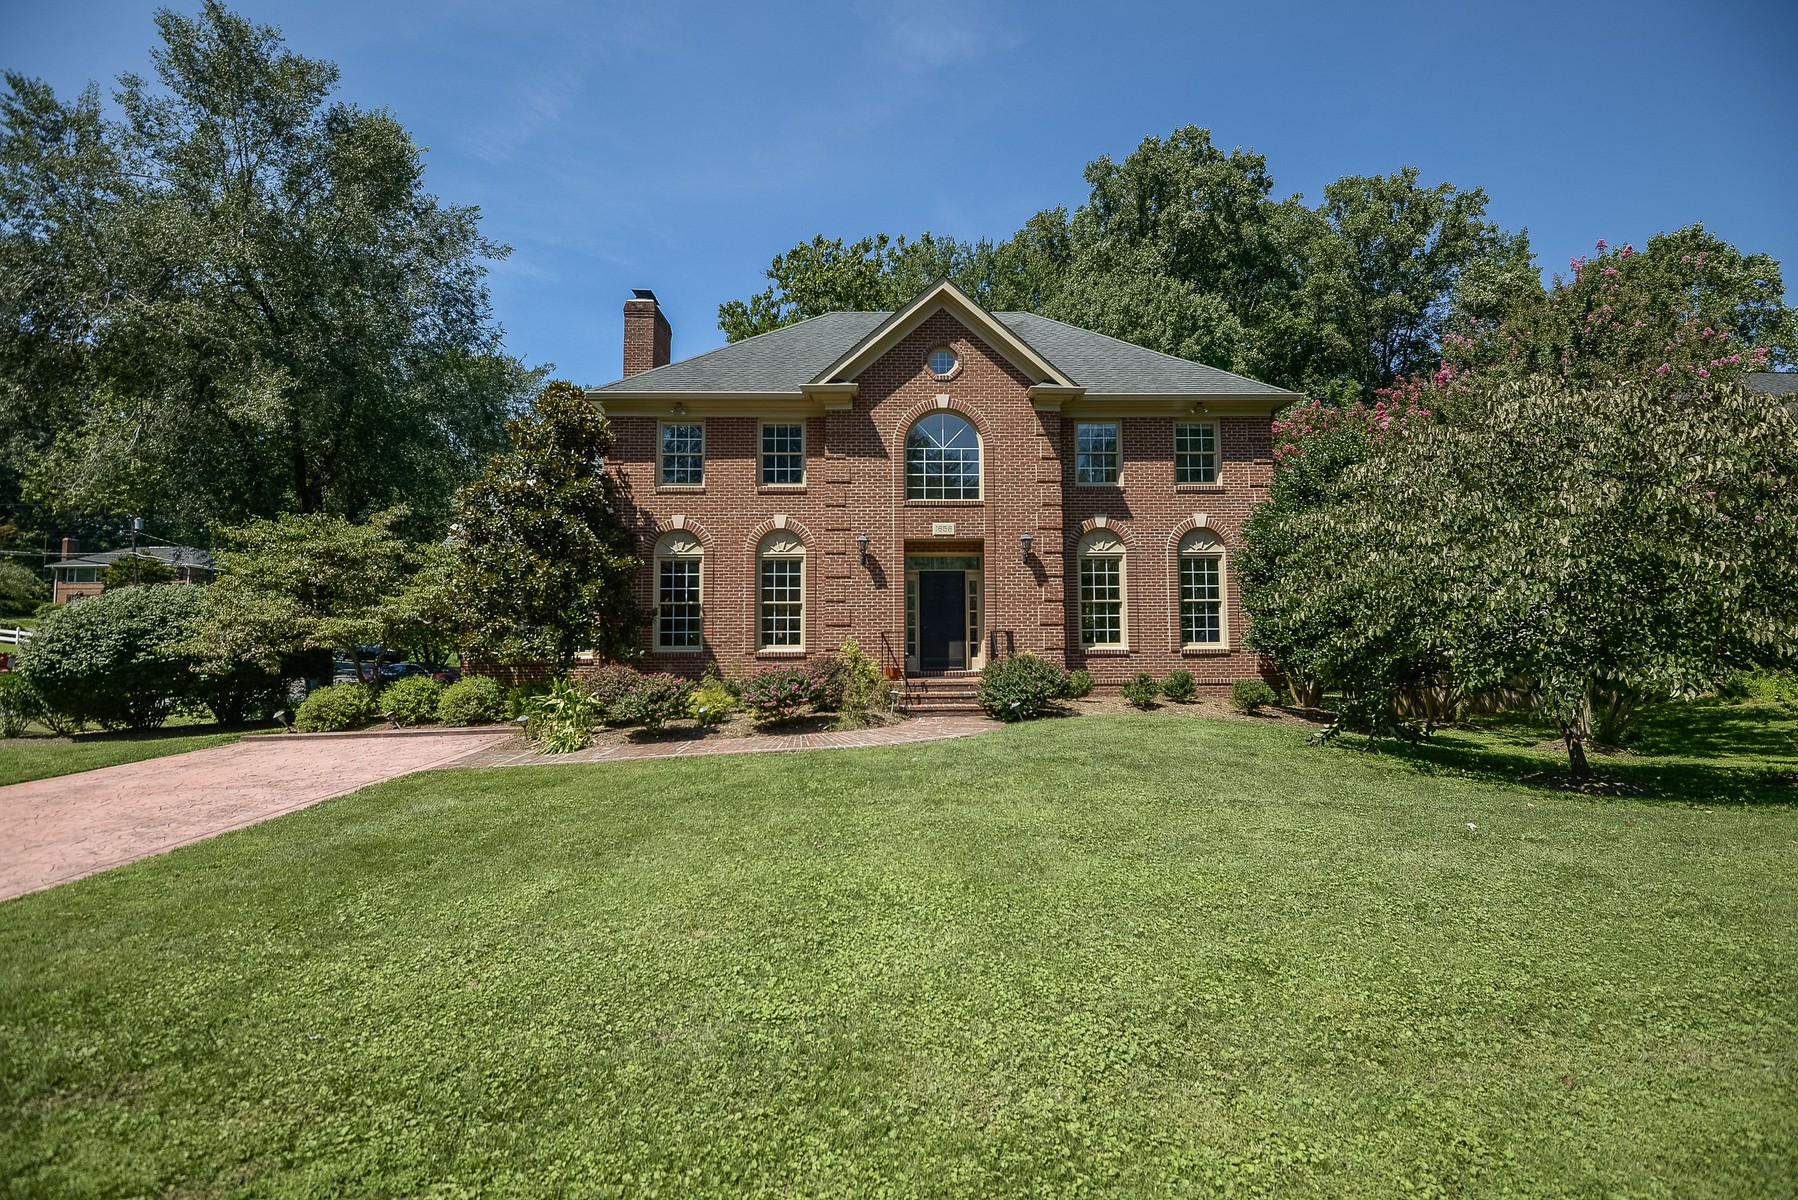 Casa Unifamiliar por un Venta en Lanes Chesterbrook 1658 Valley Ave McLean, Virginia 22101 Estados Unidos